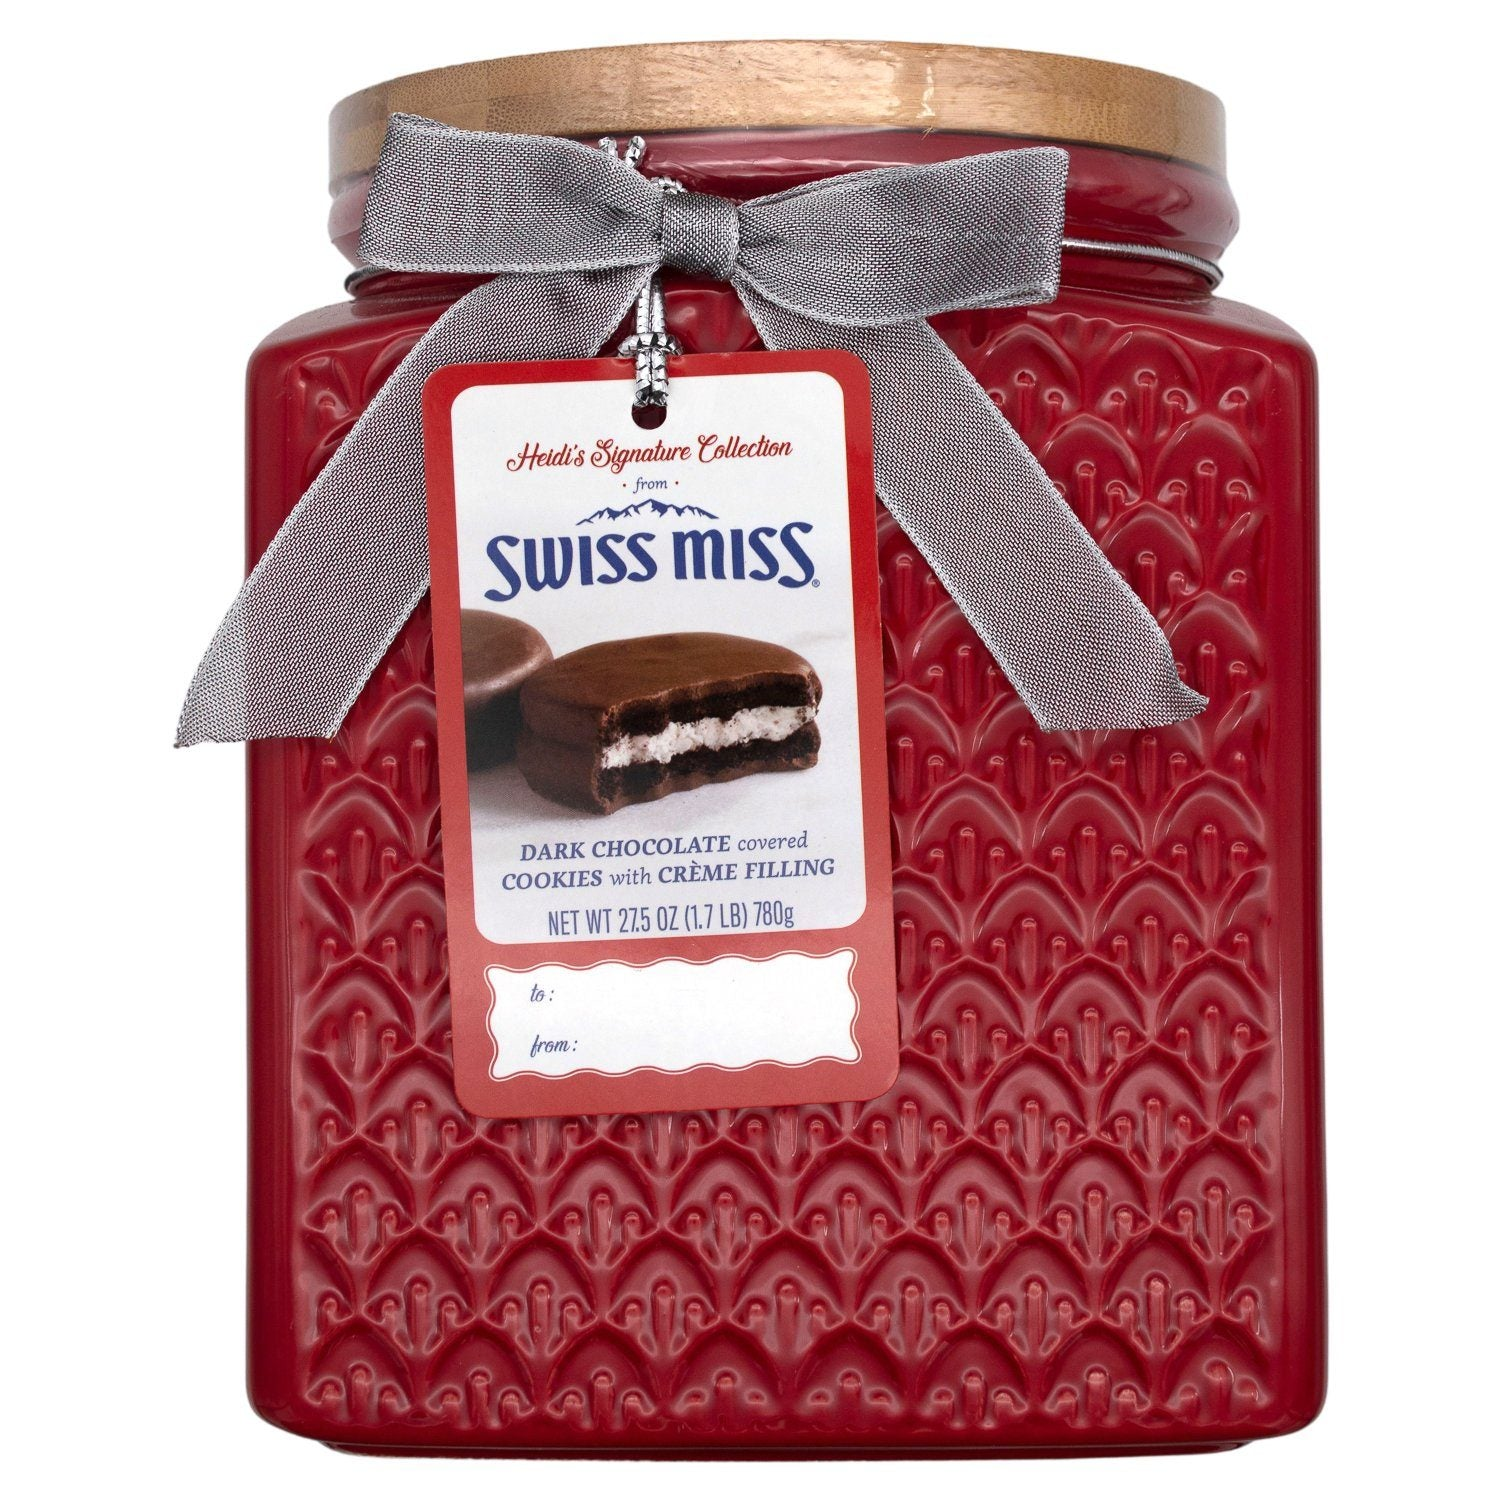 Heidi's Signature Collection, Dark Chocolate Covered Cookies With Creme Filling in Ceramic Jar Meltable Swiss Miss 27.5 Ounce